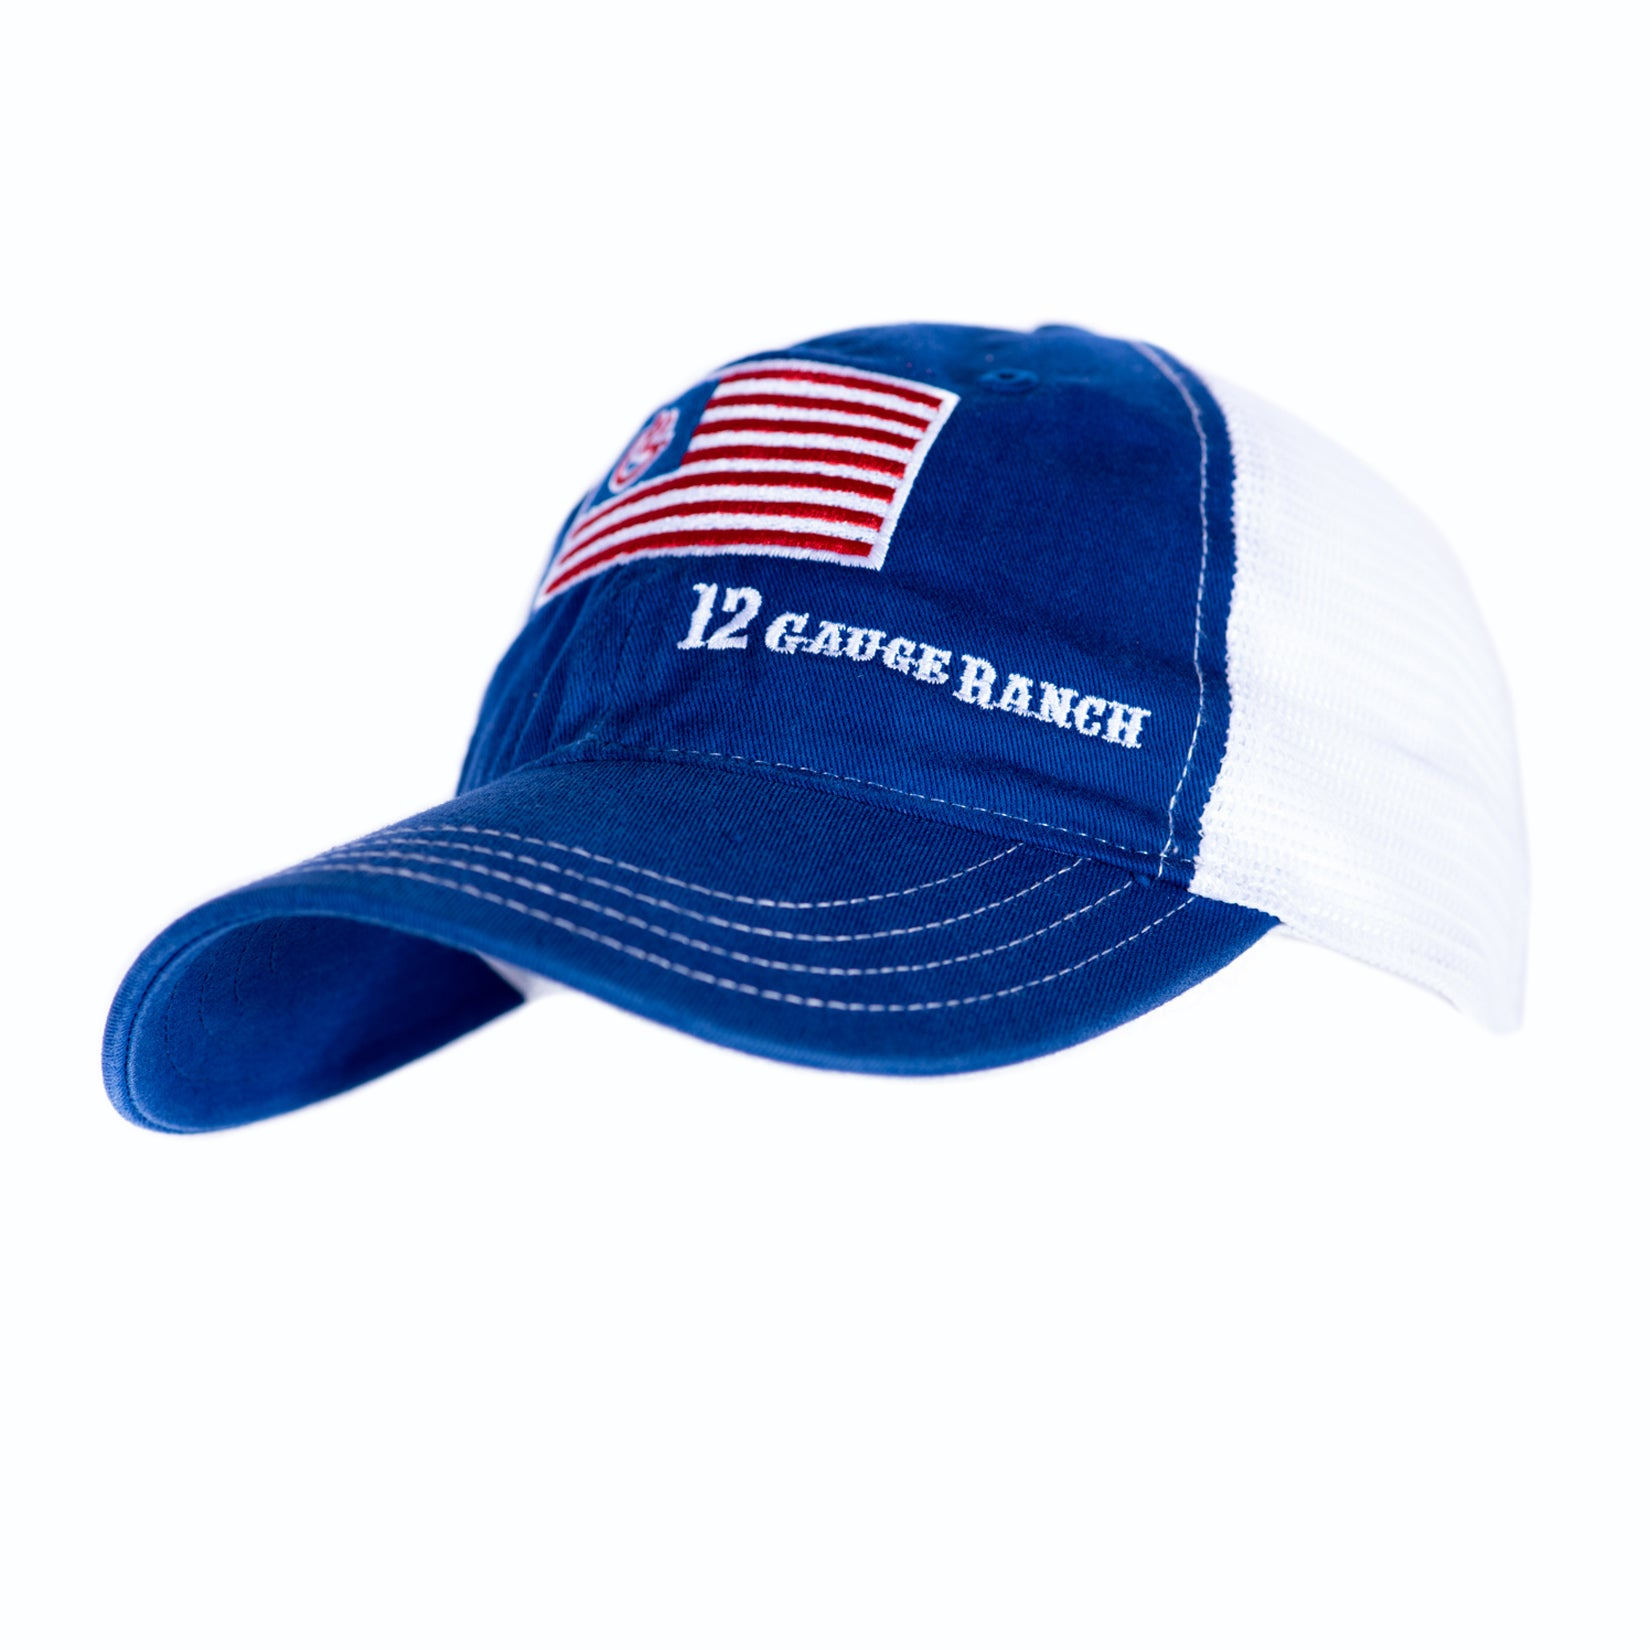 12 Gauge Ranch Patriotic Flag Low Profile Baseball Hat, Hats, 12 Gauge Ranch, 12 Gauge Ranch Ranch  12 Gauge Ranch